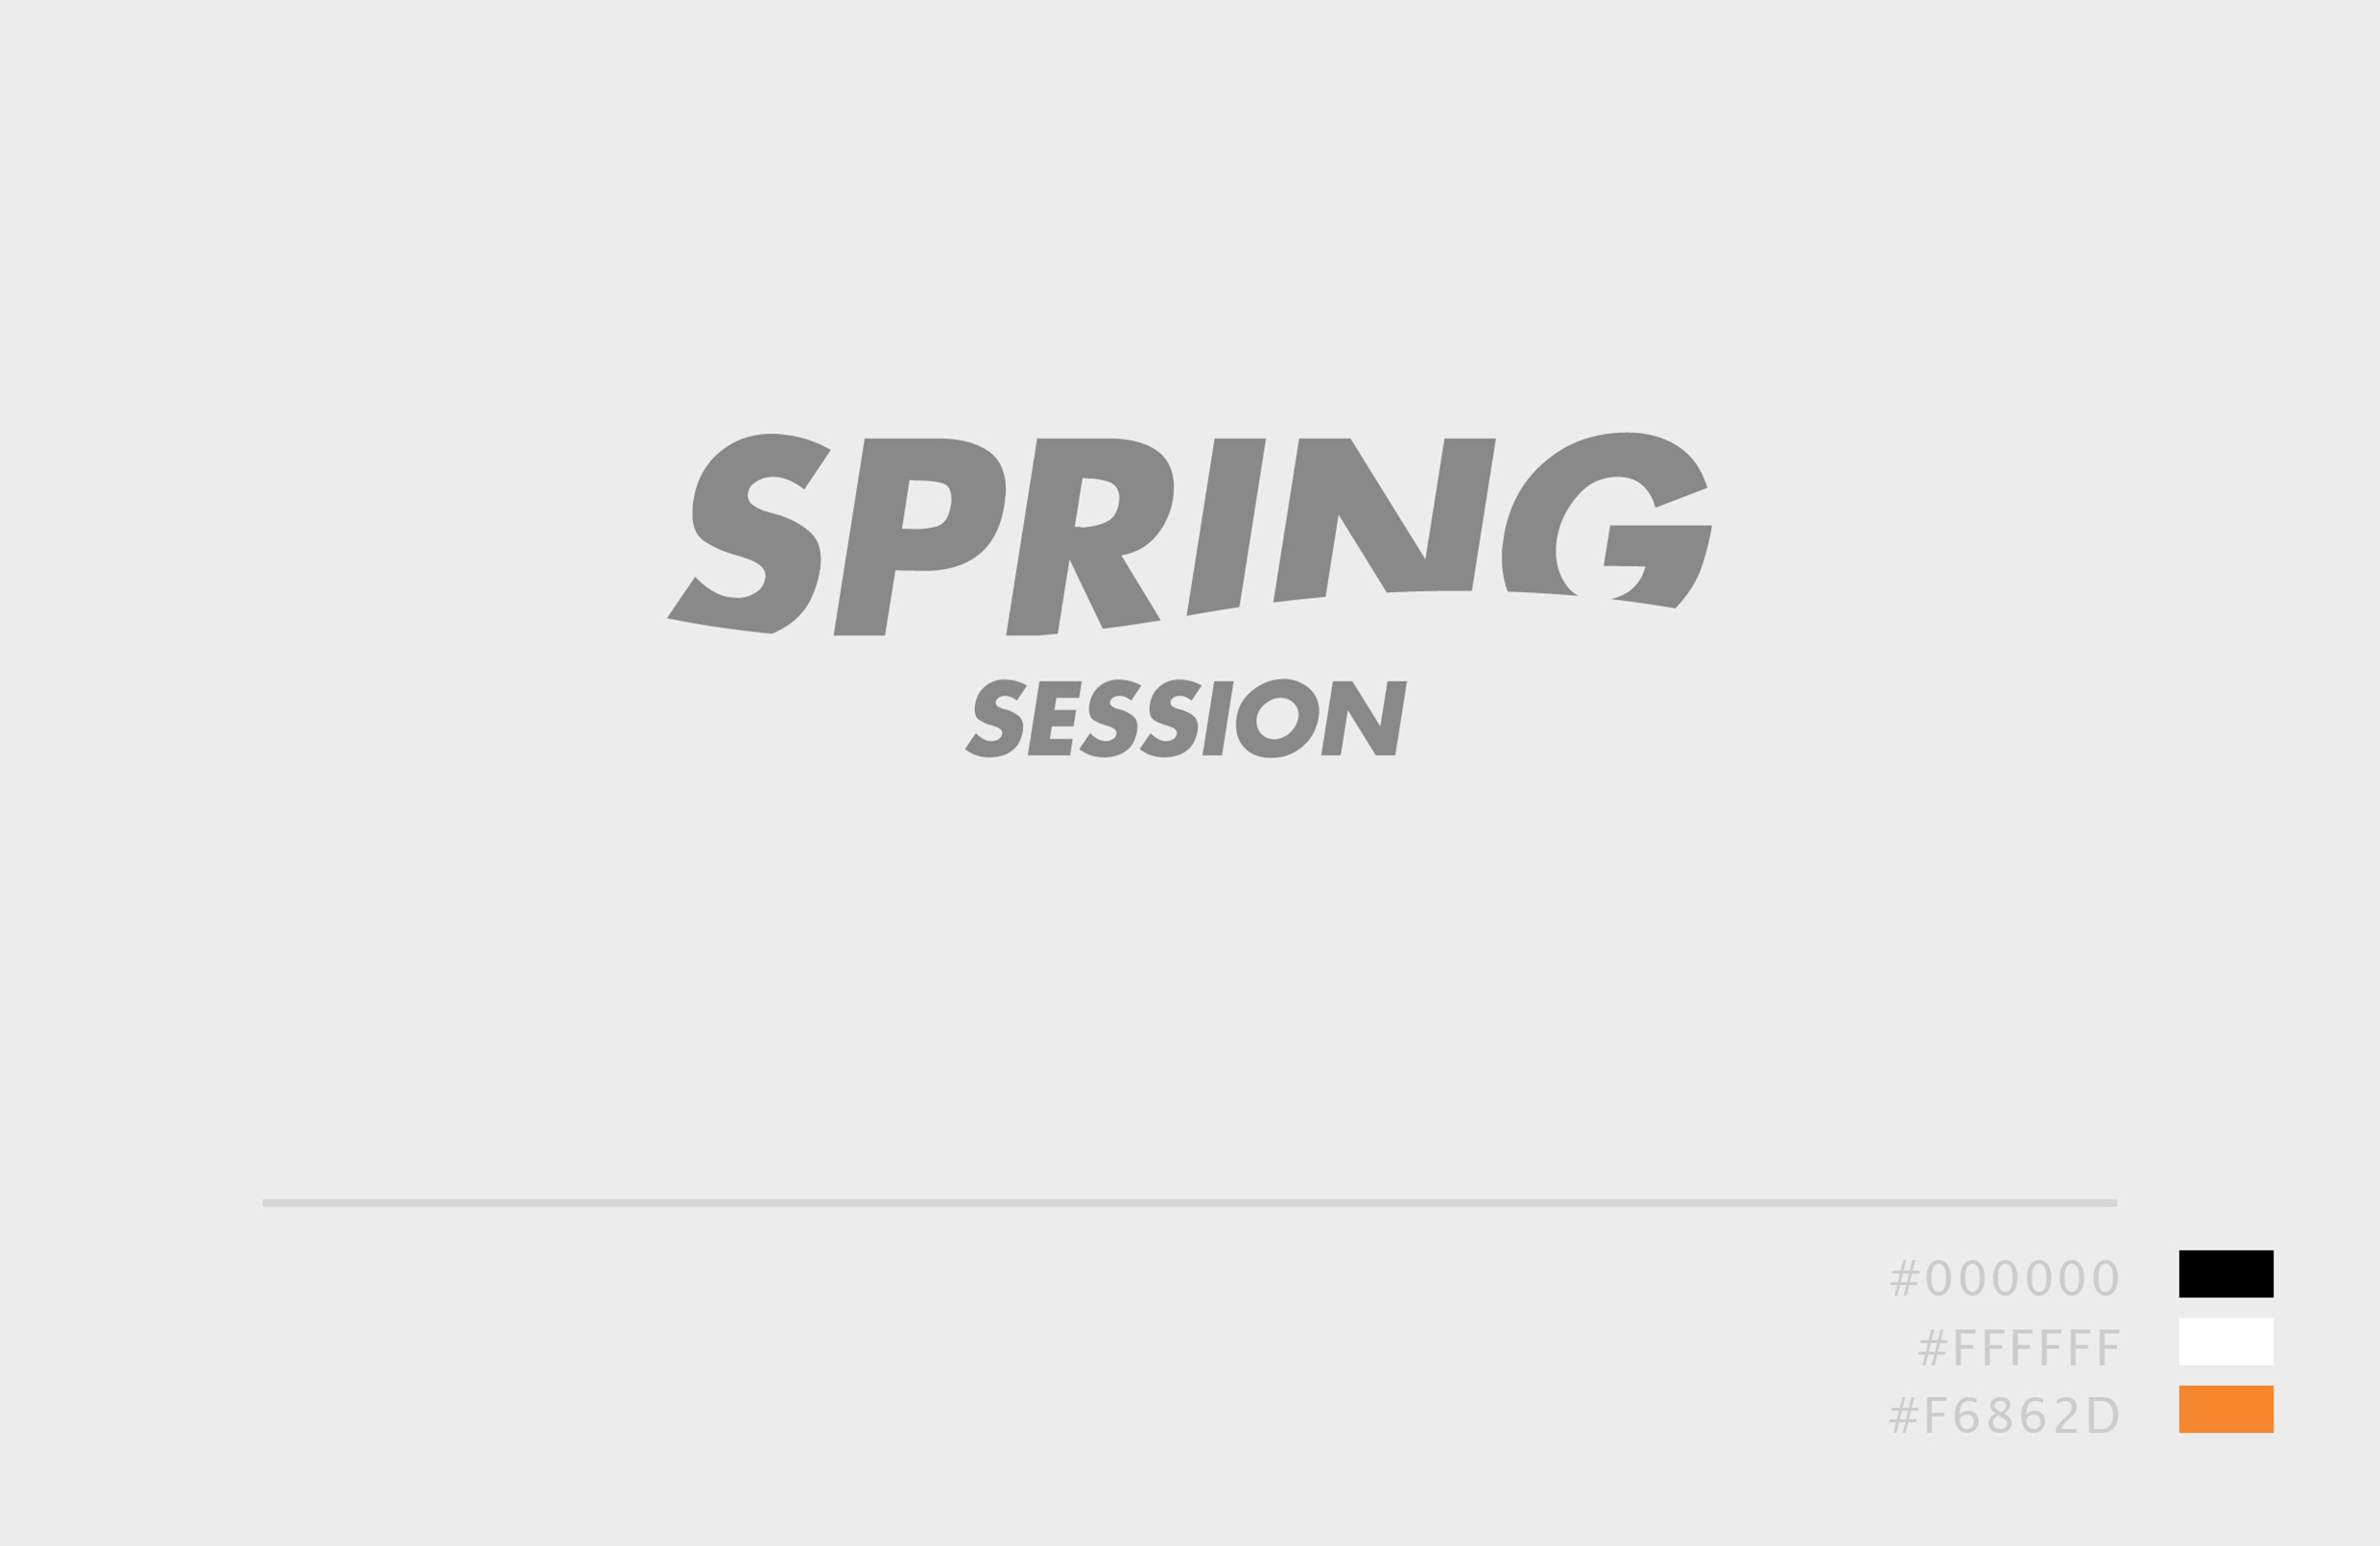 GEMINIWEB - IMAGE - STATIONERY - SPRING SESSION - LOGO